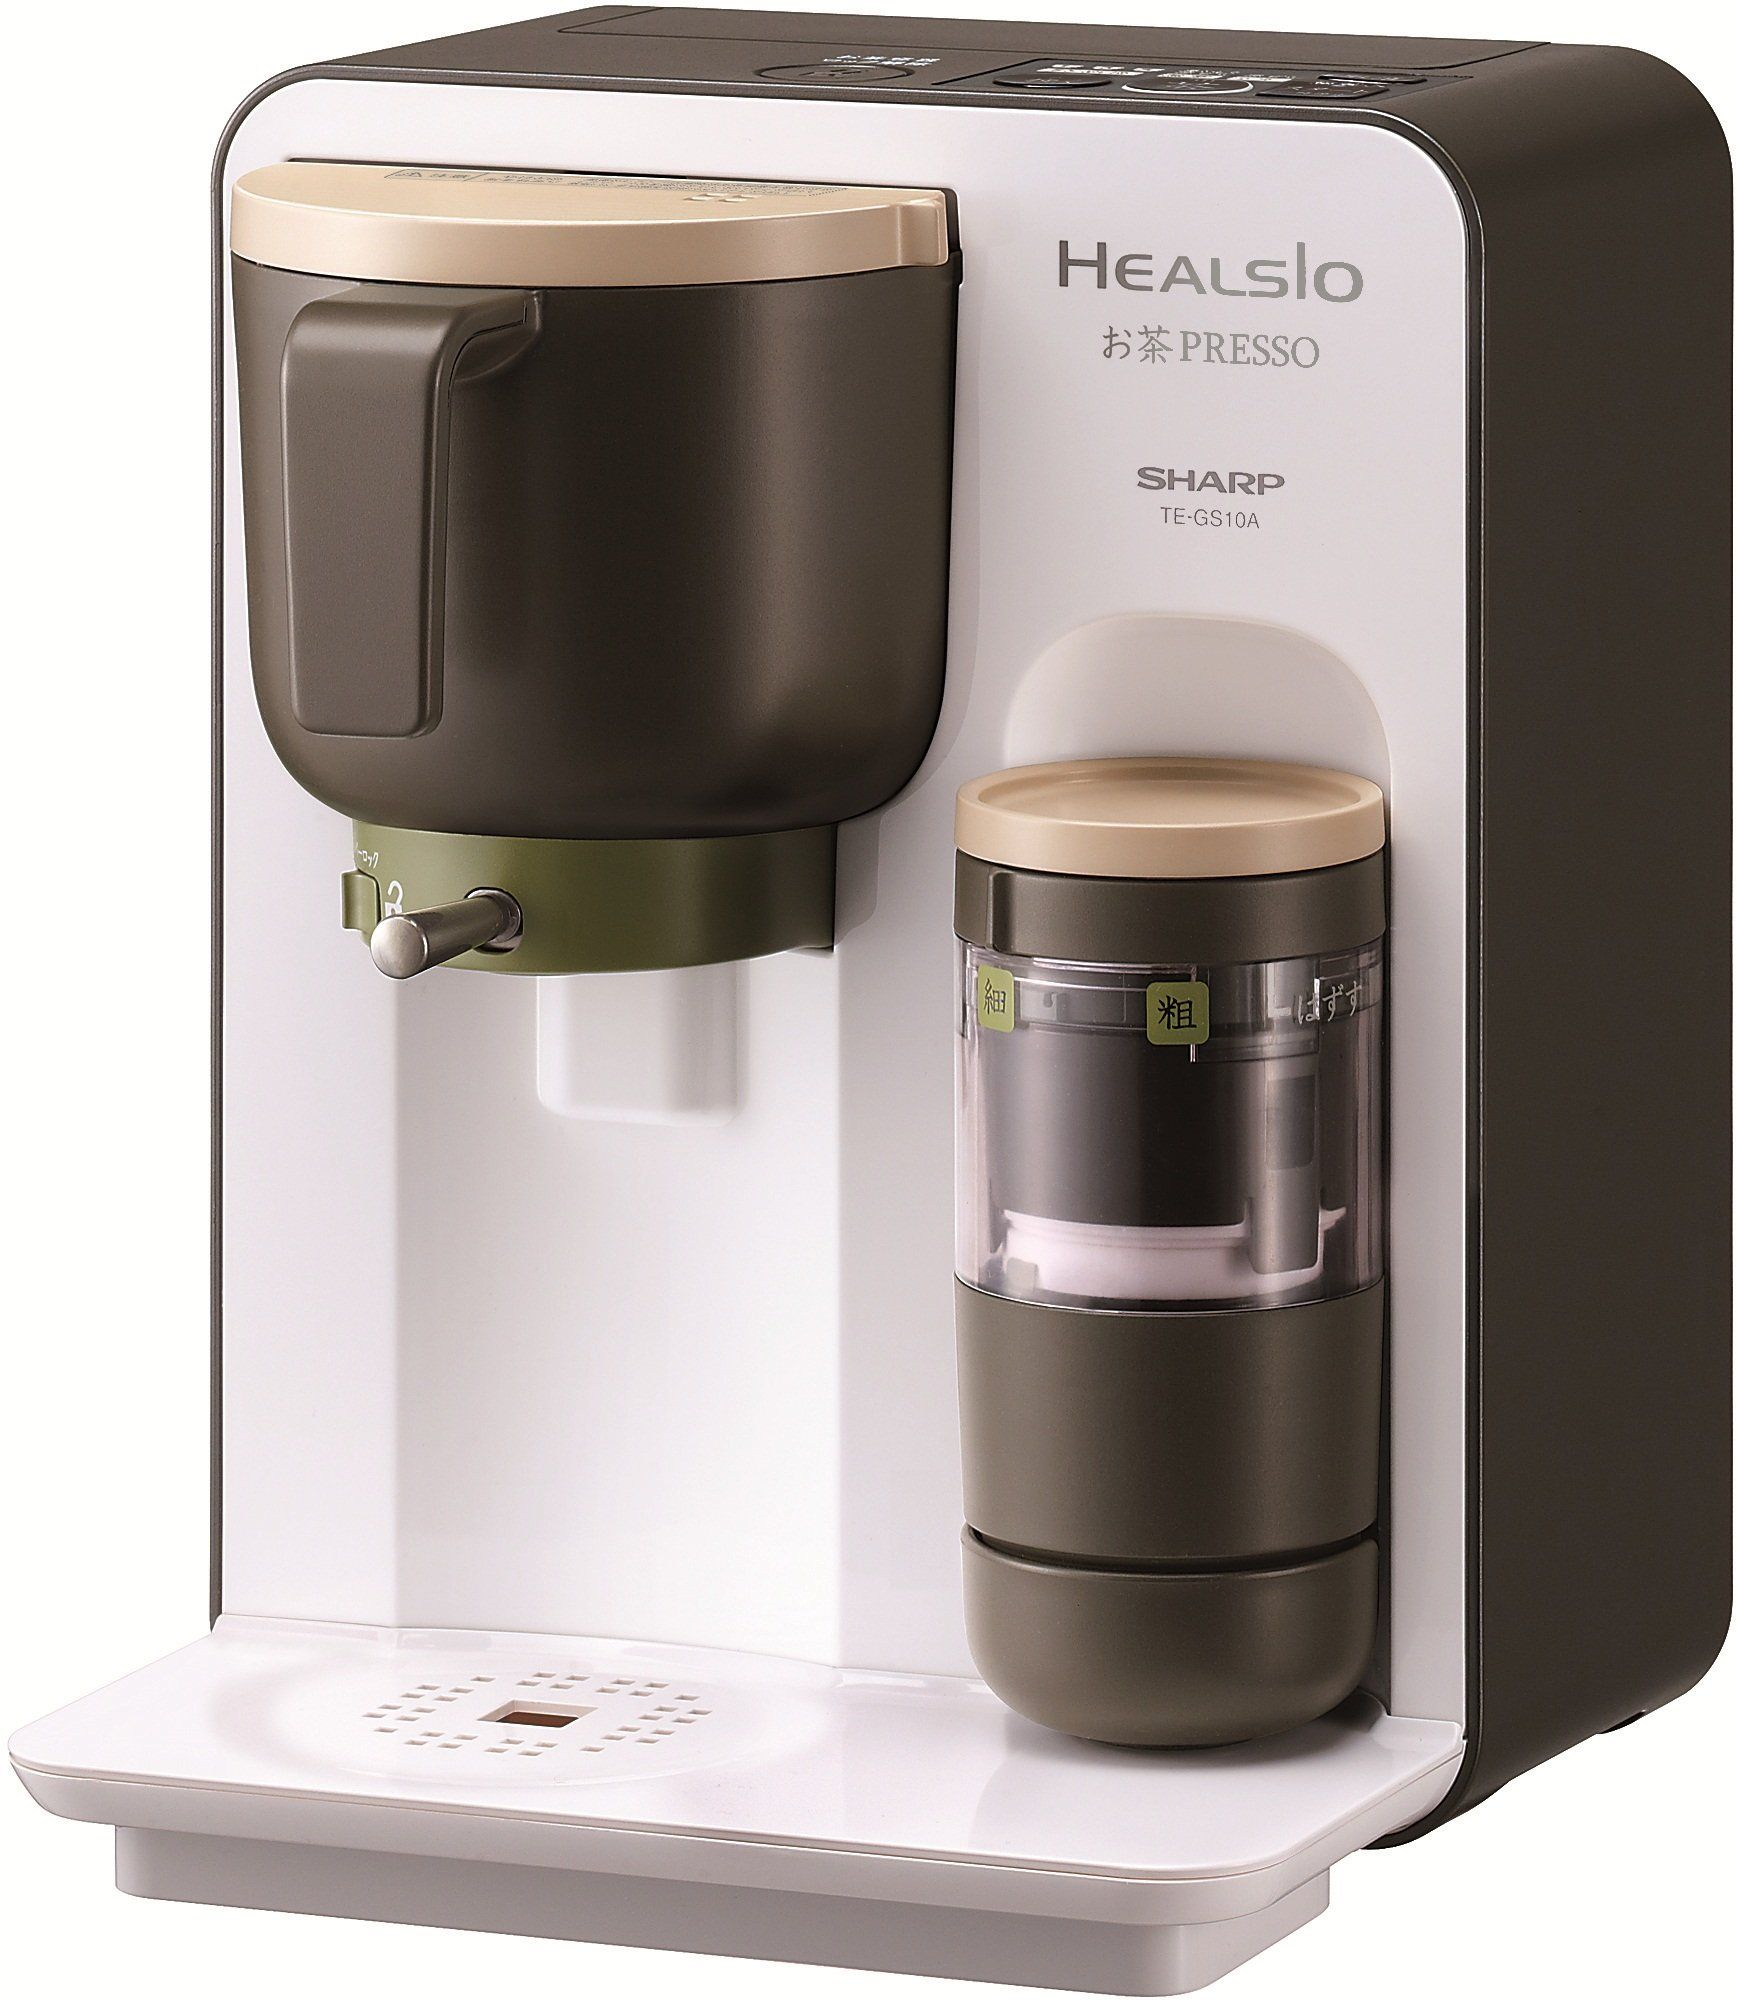 SHARP HEALSIO OCHAPRESSO Check out this great